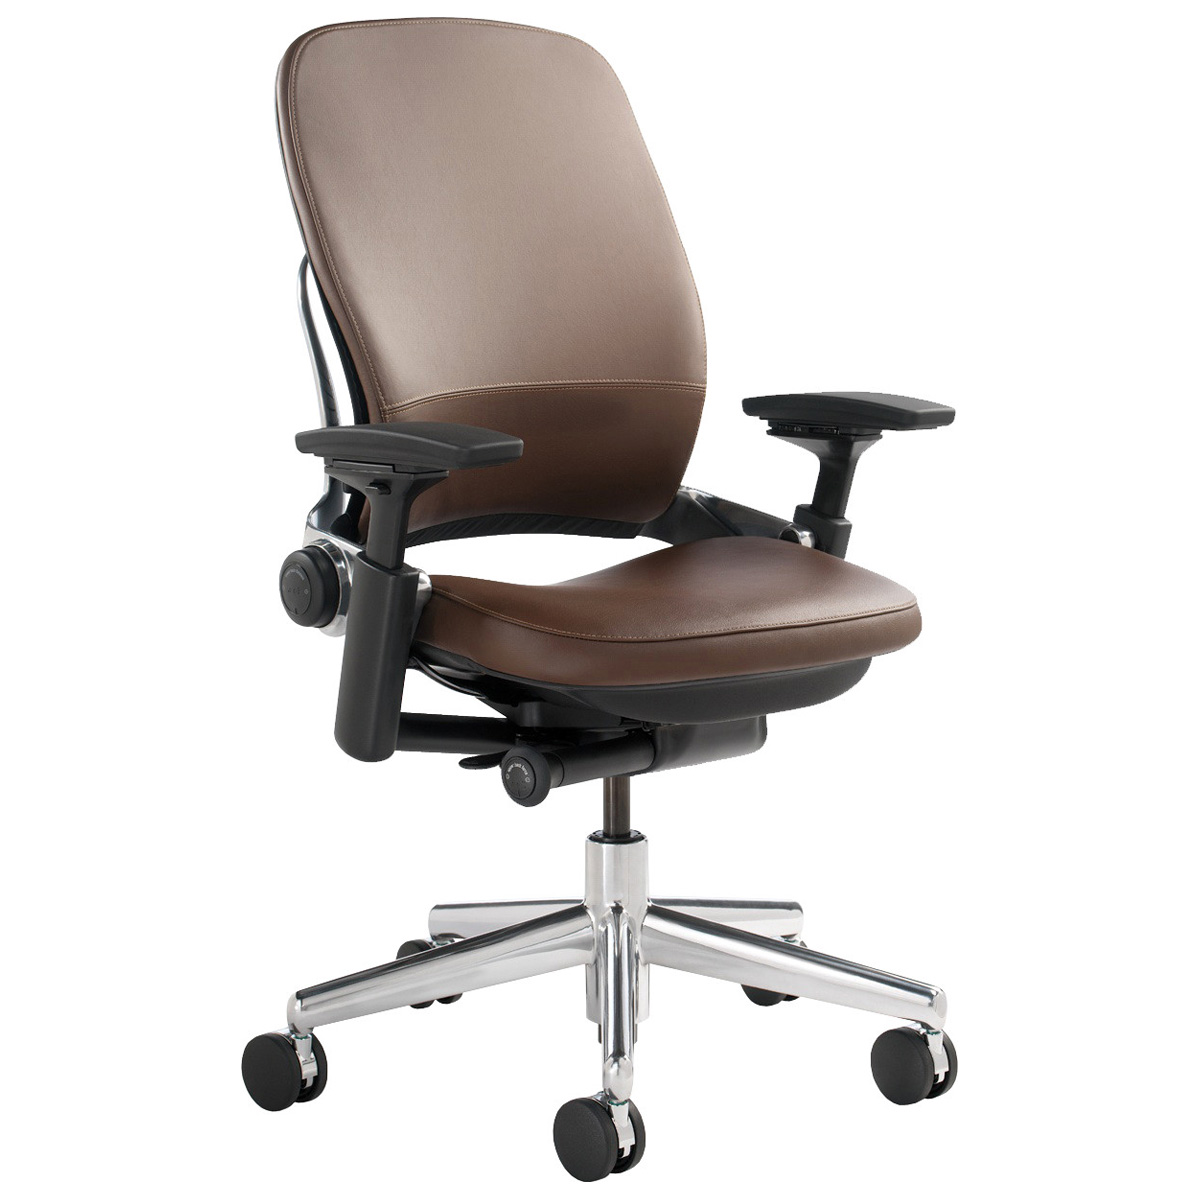 Steelcase Chair Steelcase Leap Chair In Leather Shop Steelcase Leap Chairs